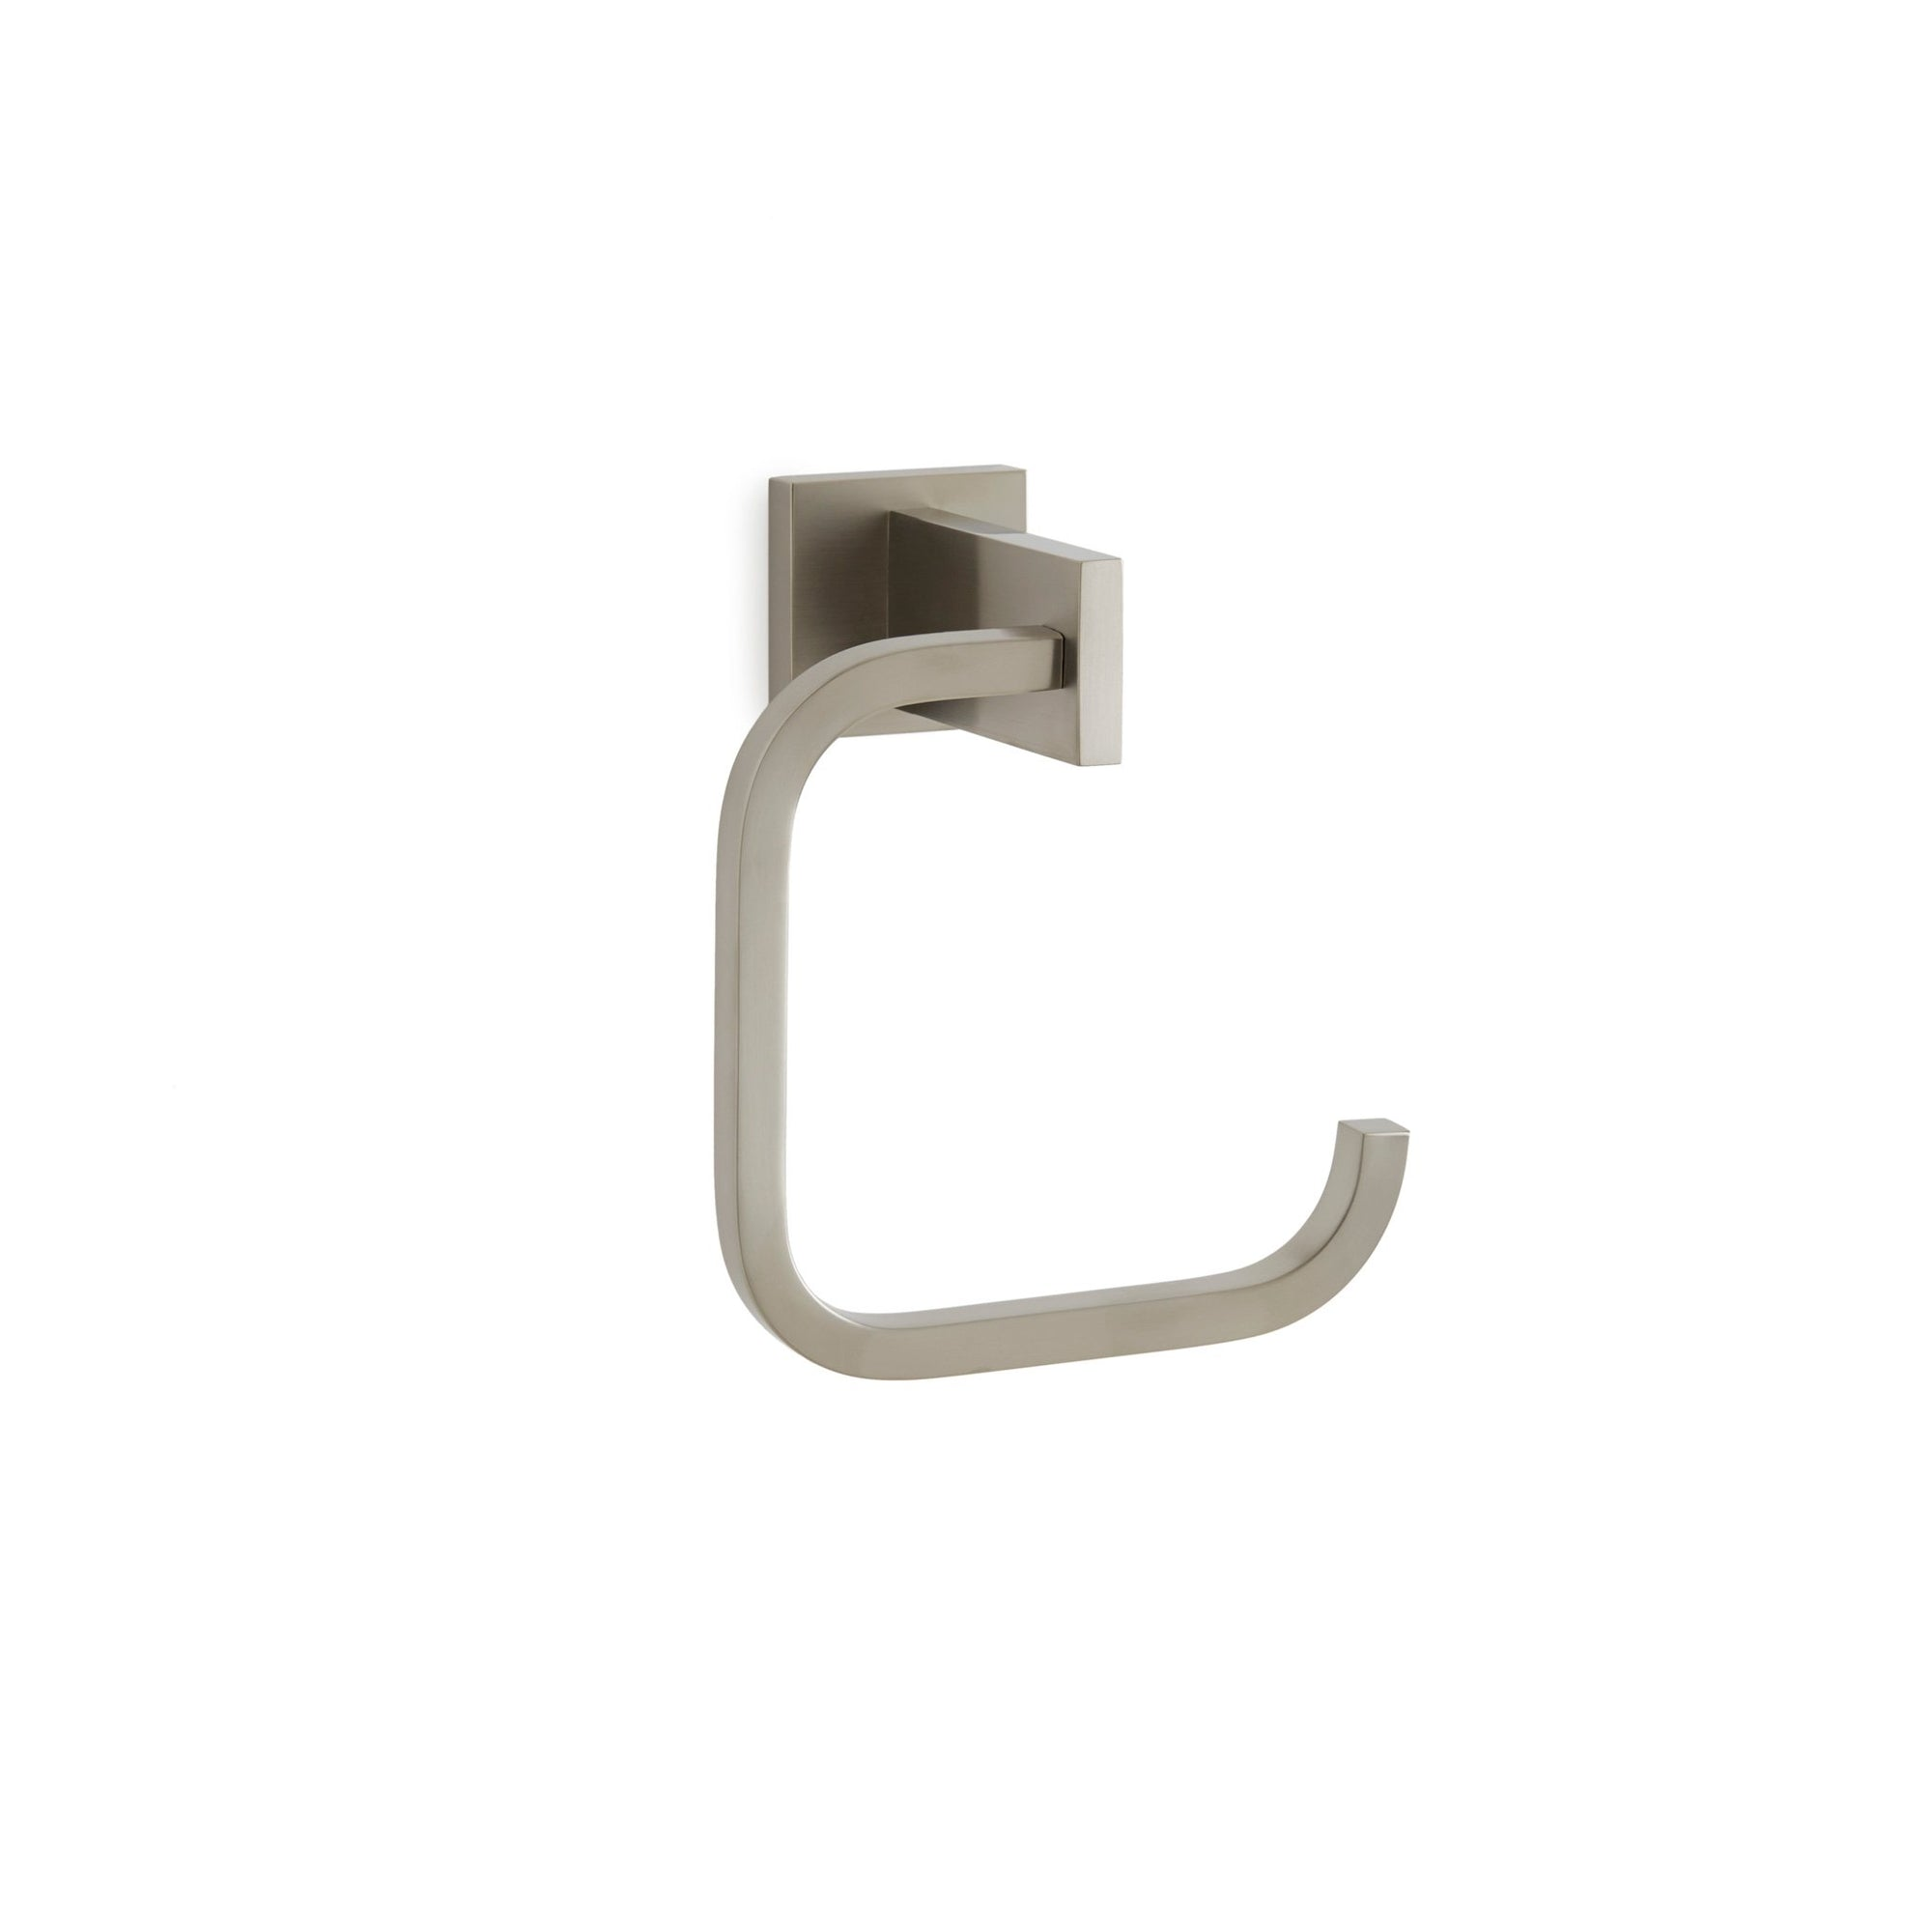 101TR-BN Sherle Wagner International Modern Towel Ring in Brushed Nickel metal finish